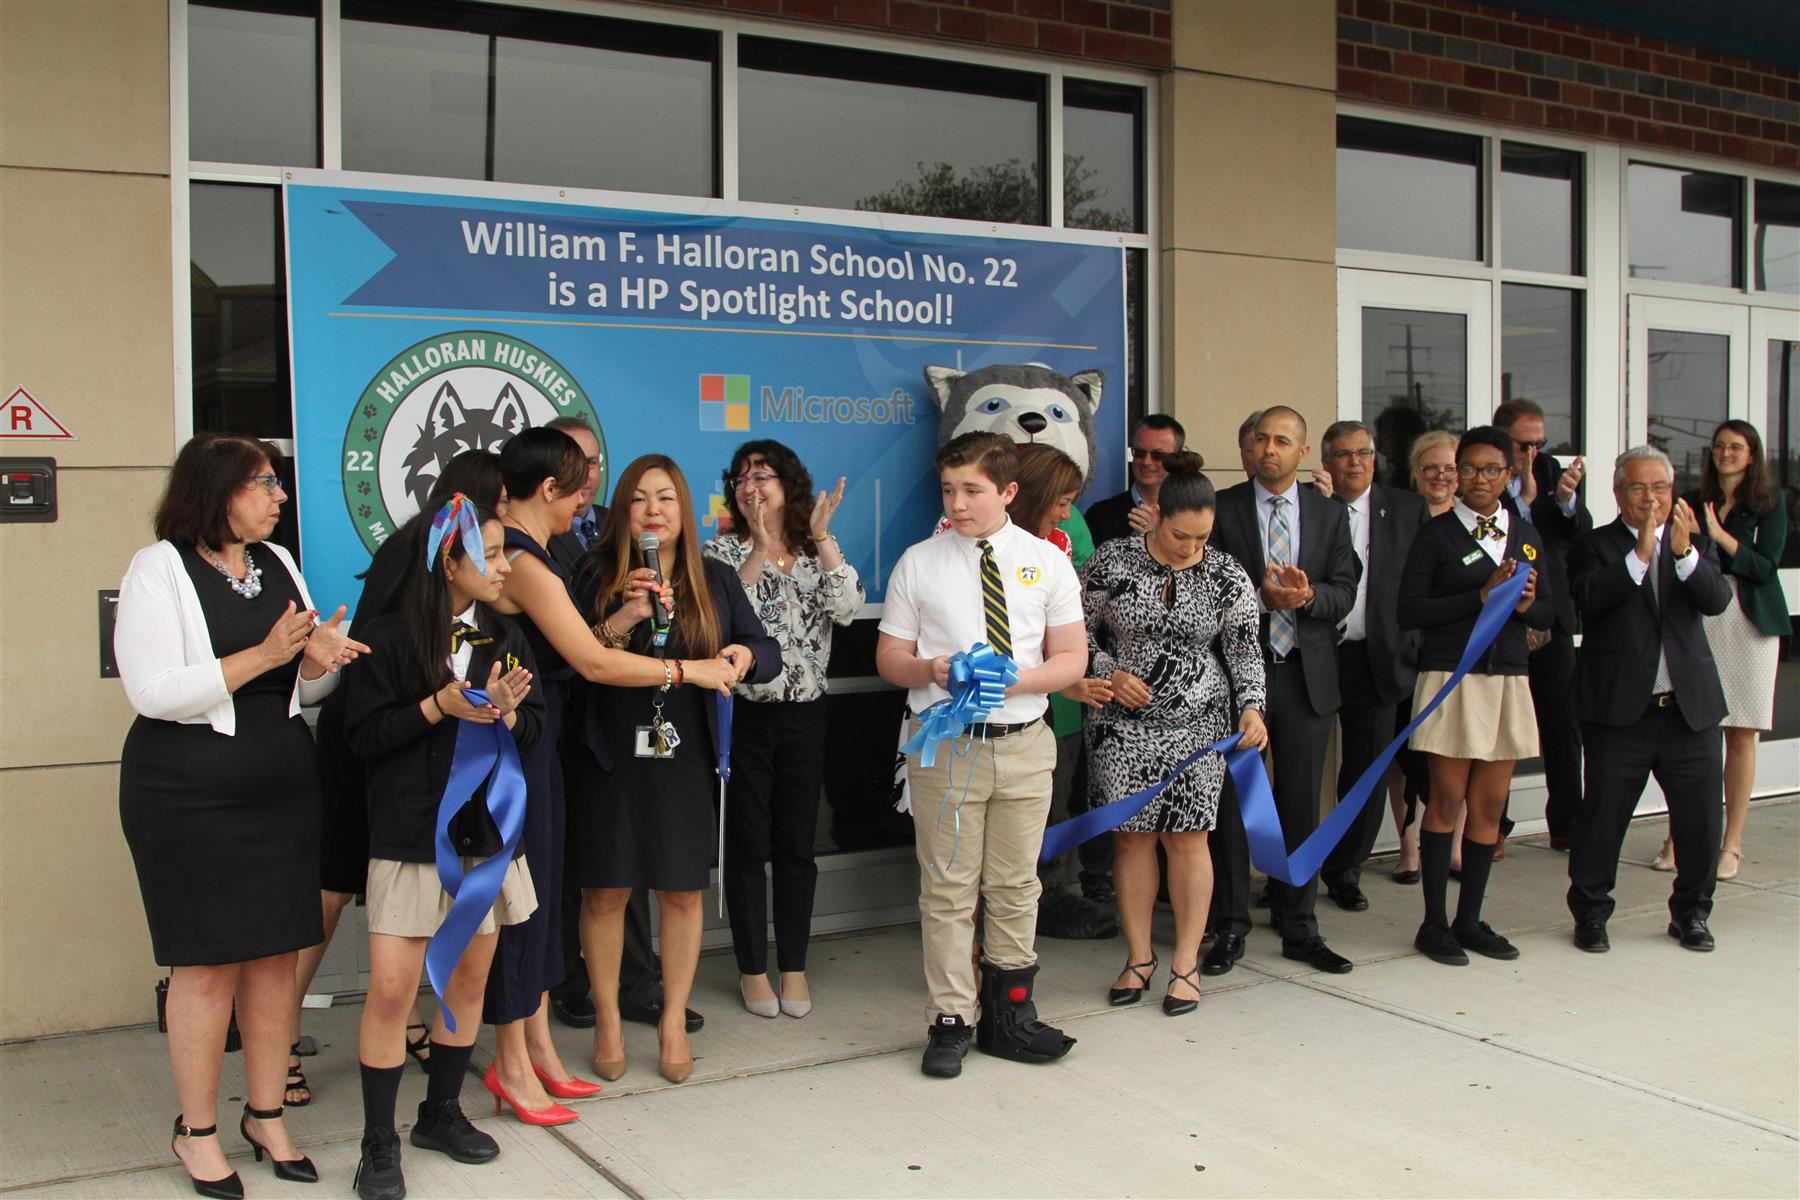 William F. Halloran School No. 22 Recognized as Nation's First HP Spotlight School